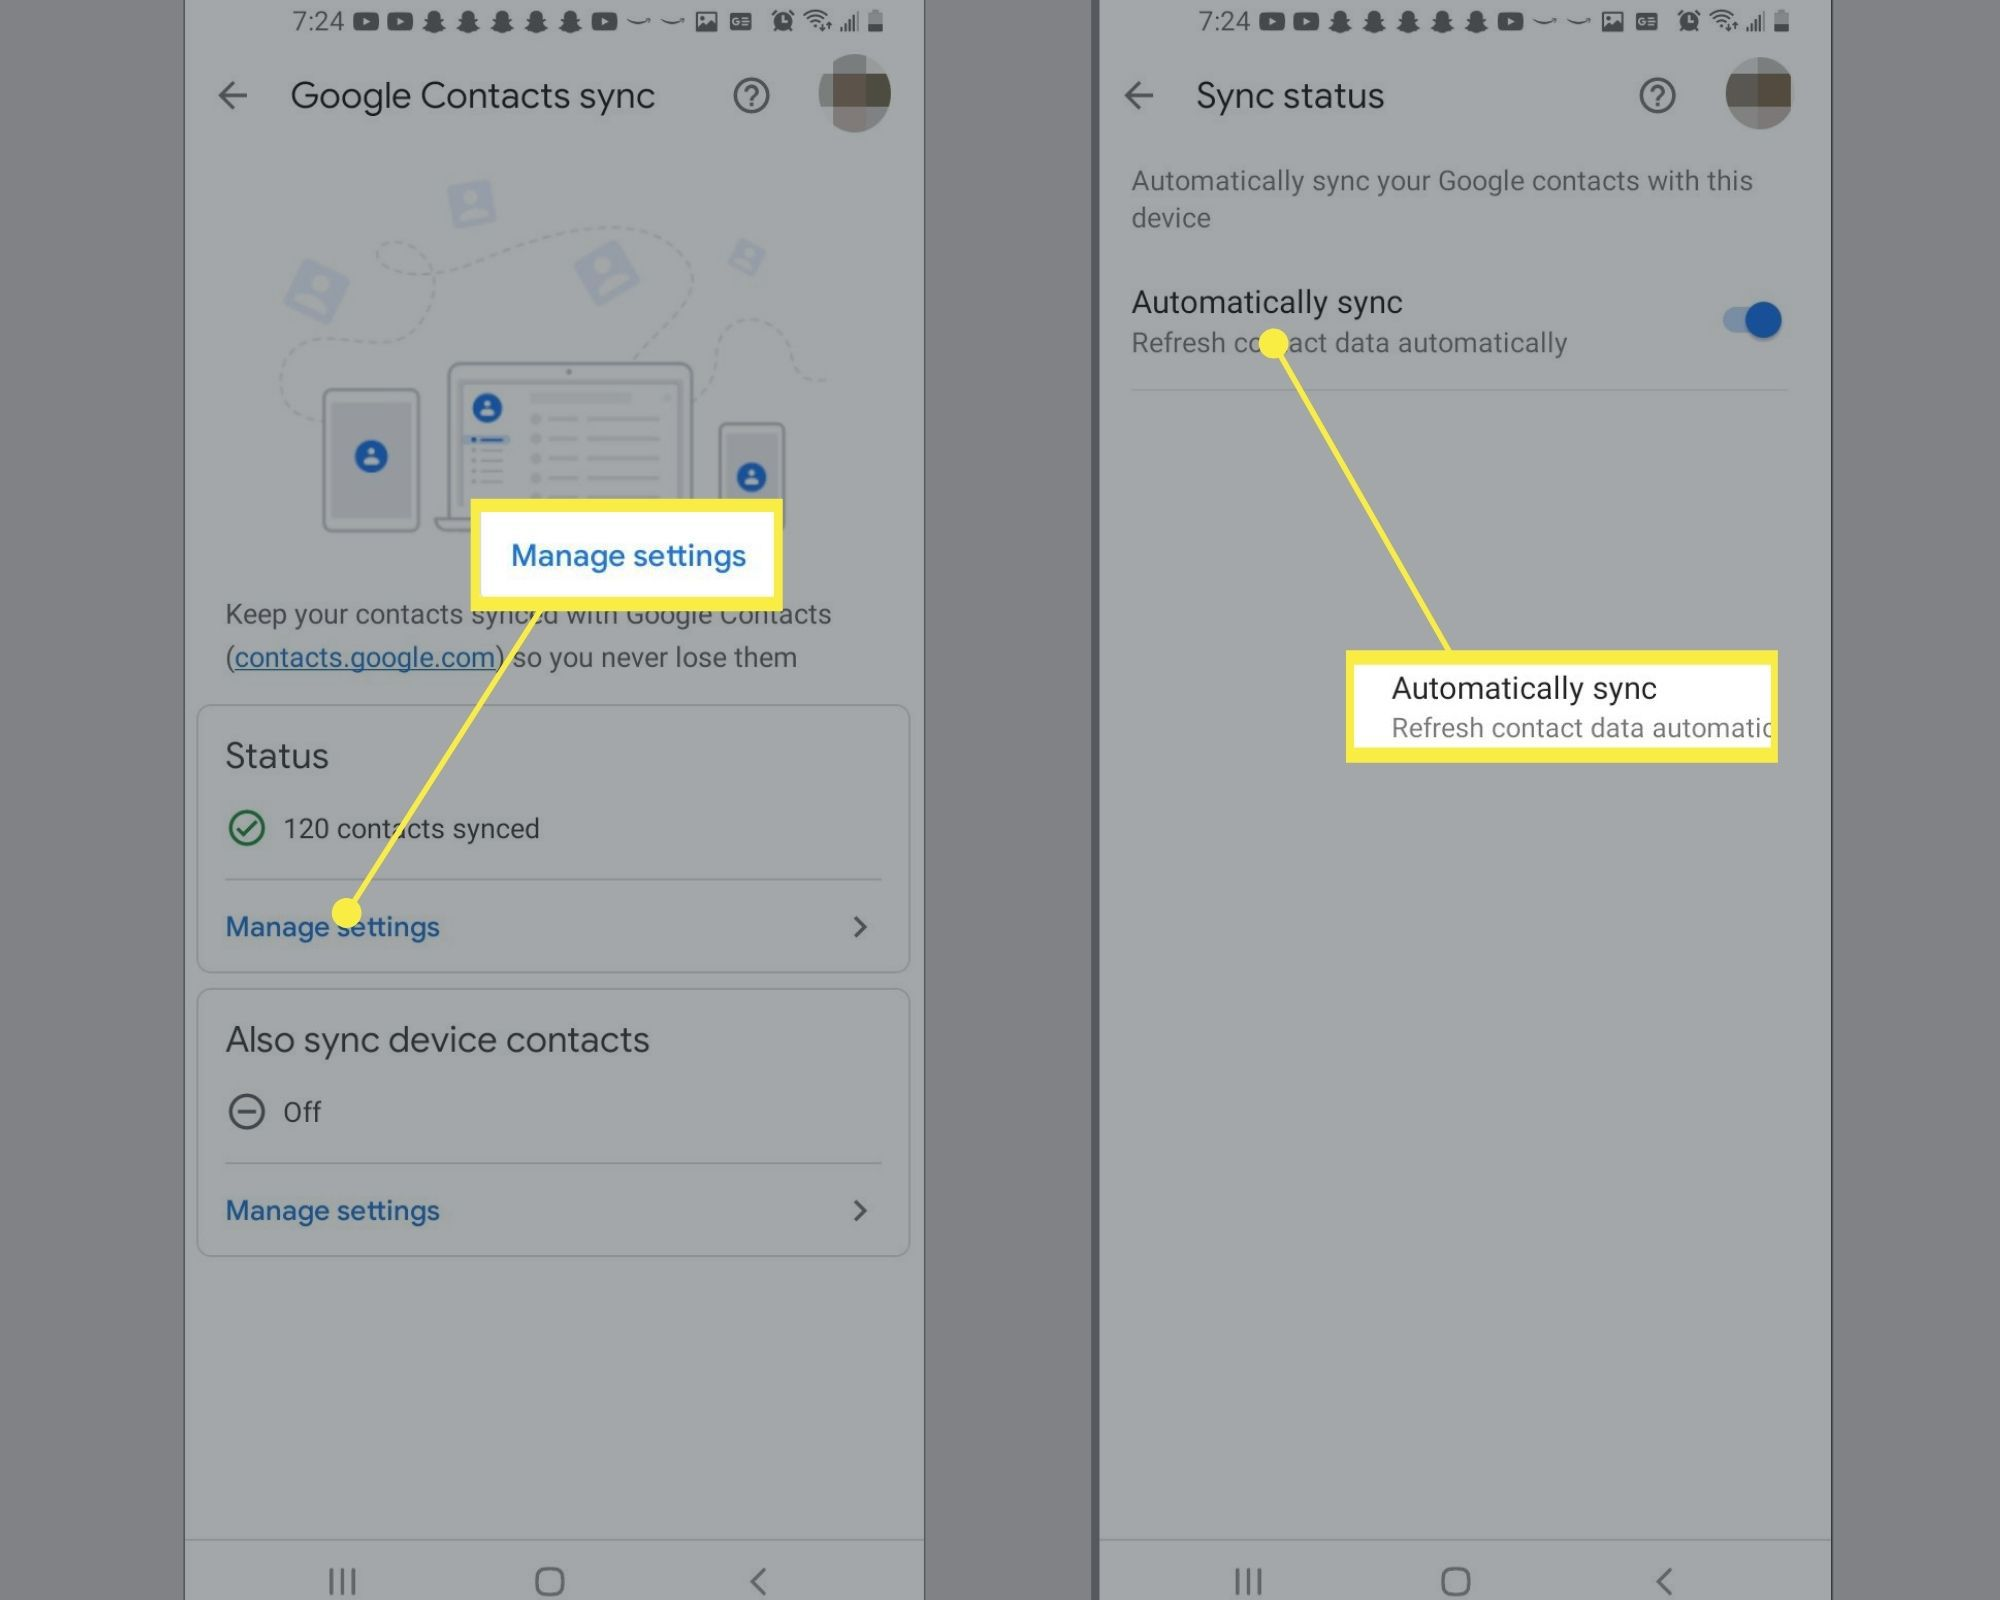 Manage Settings under Status and Automatically sync switch in the Google Home app